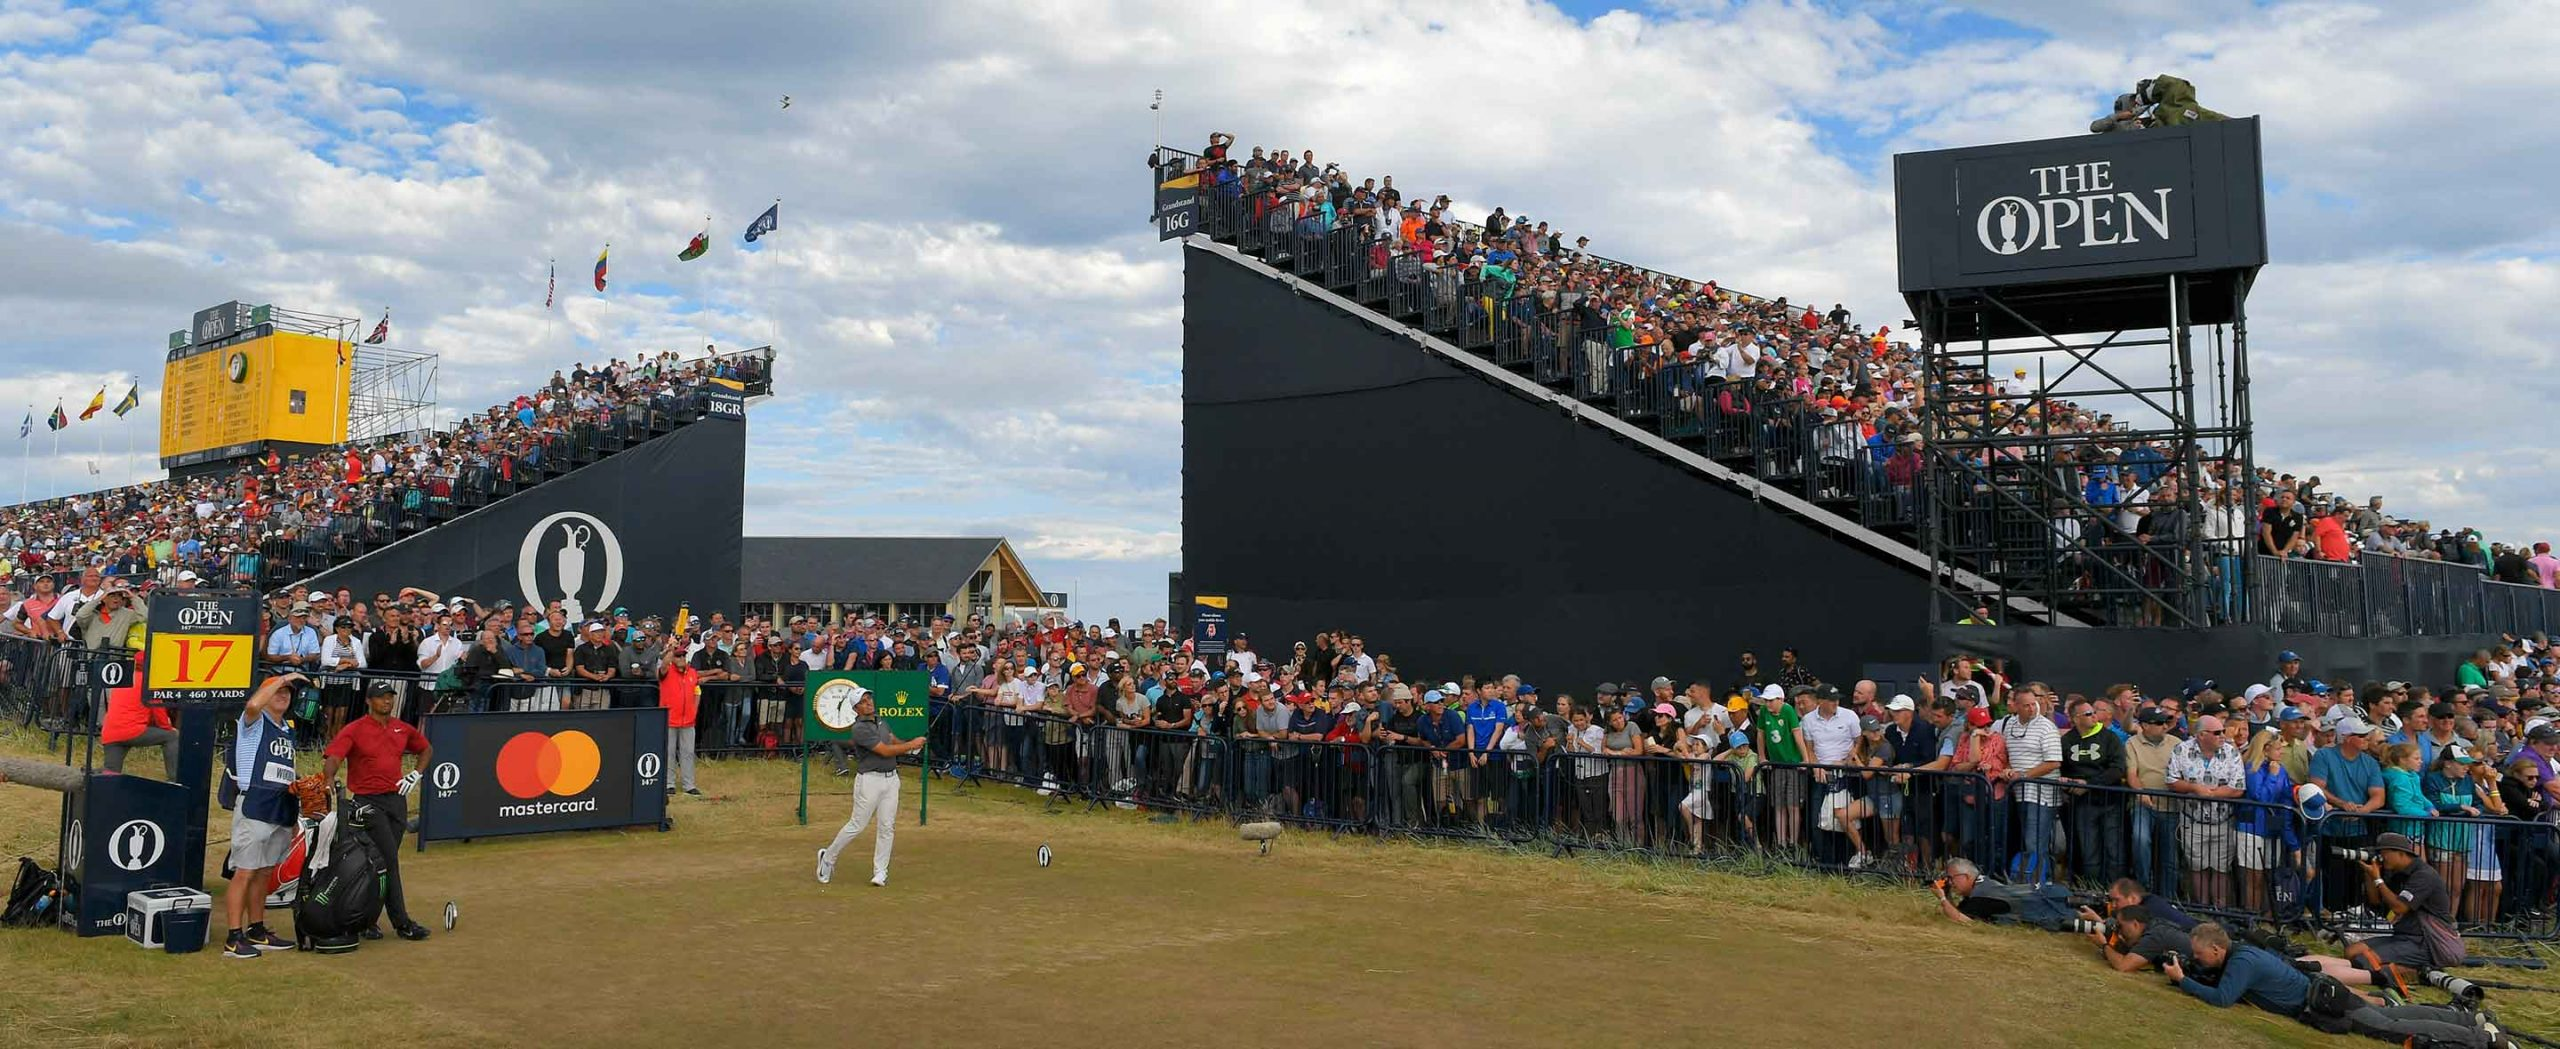 The Open 2021